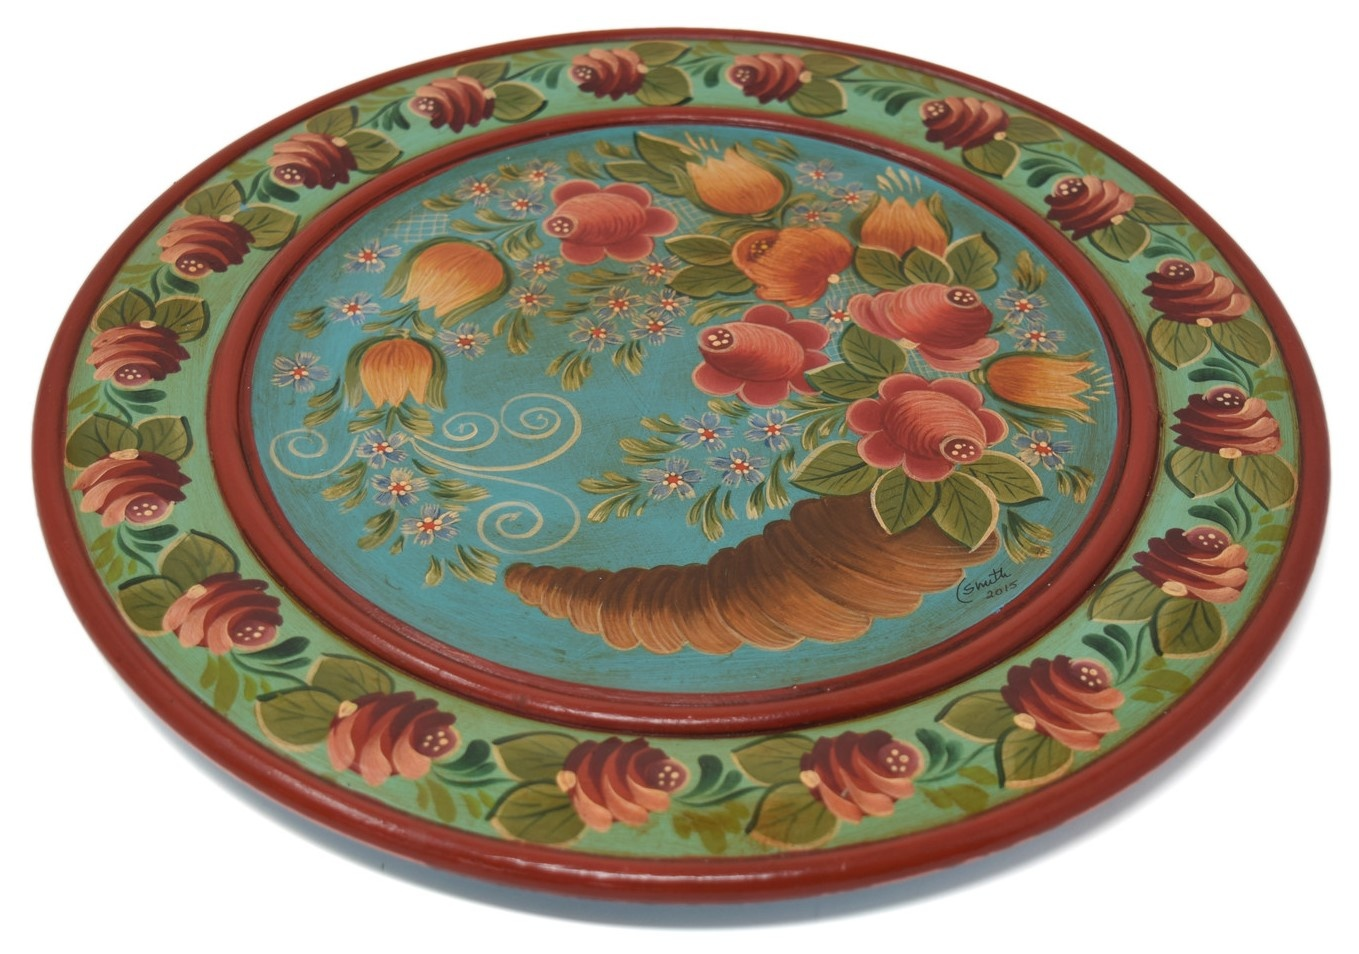 Wooden Plate with Horn of Plenty, Turquoise/Light Green-1